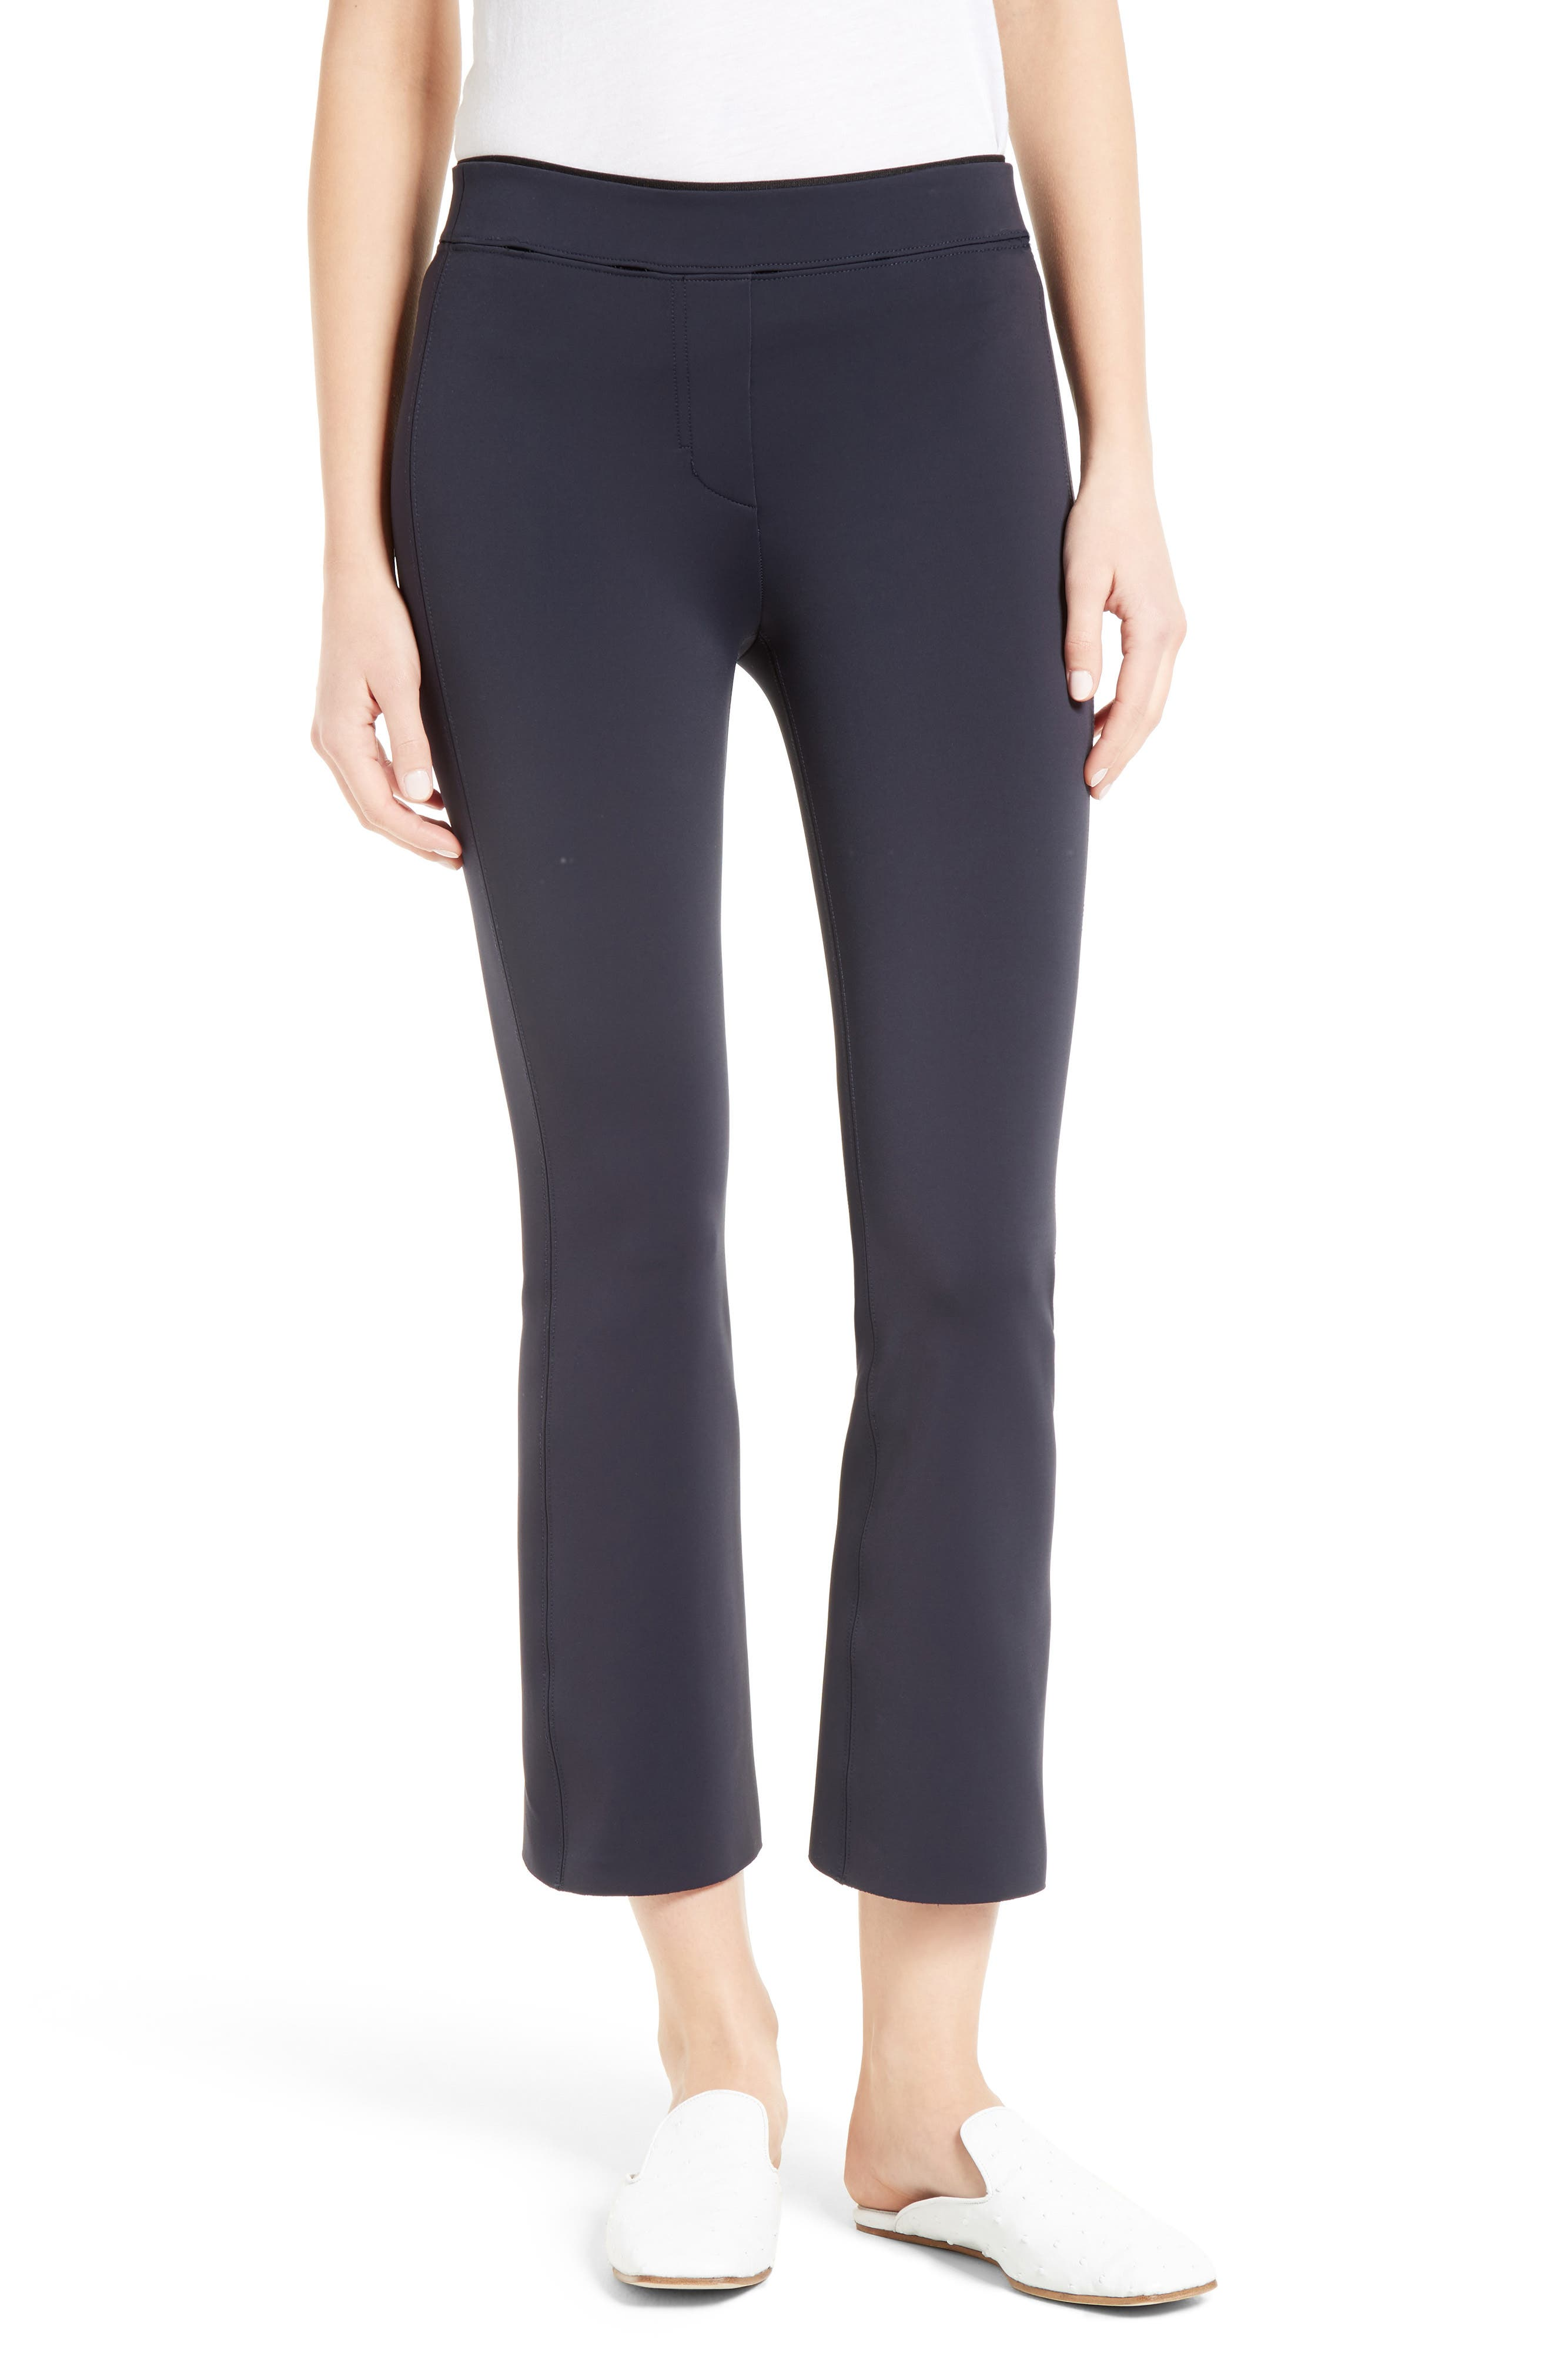 Helmut Lang Technical Neoprene Pants